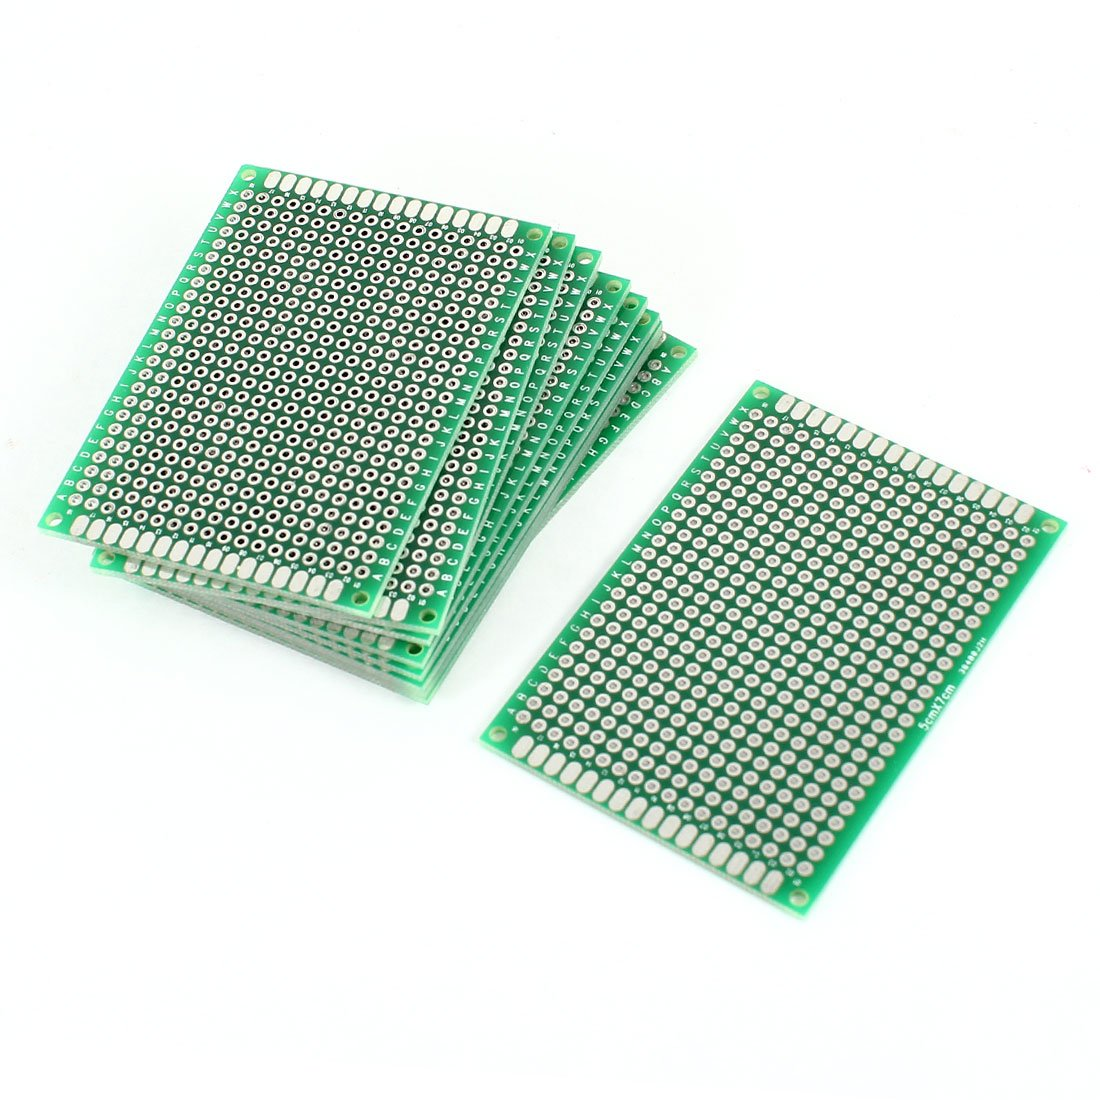 Uxcell a14062100ux0222 10 Piece Double Sided Prototyping Experiment Matrix DIY PCB Circuit Board 5cm x 7cm